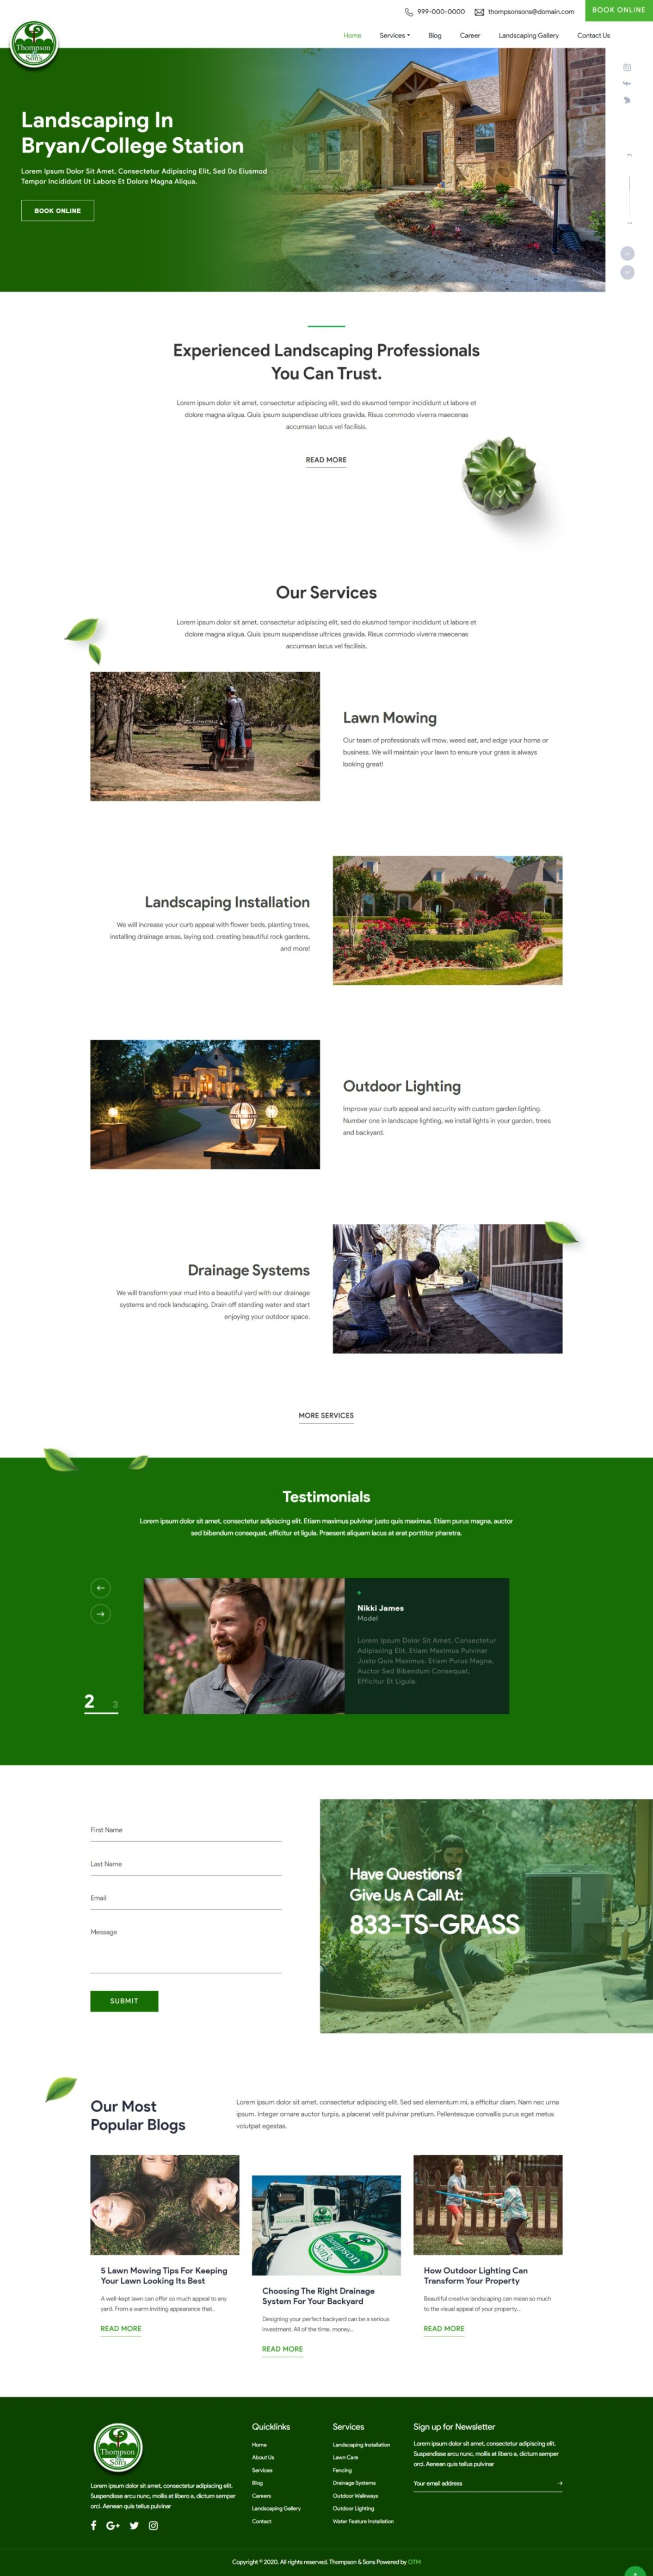 Landscaping in Bryan/College Station